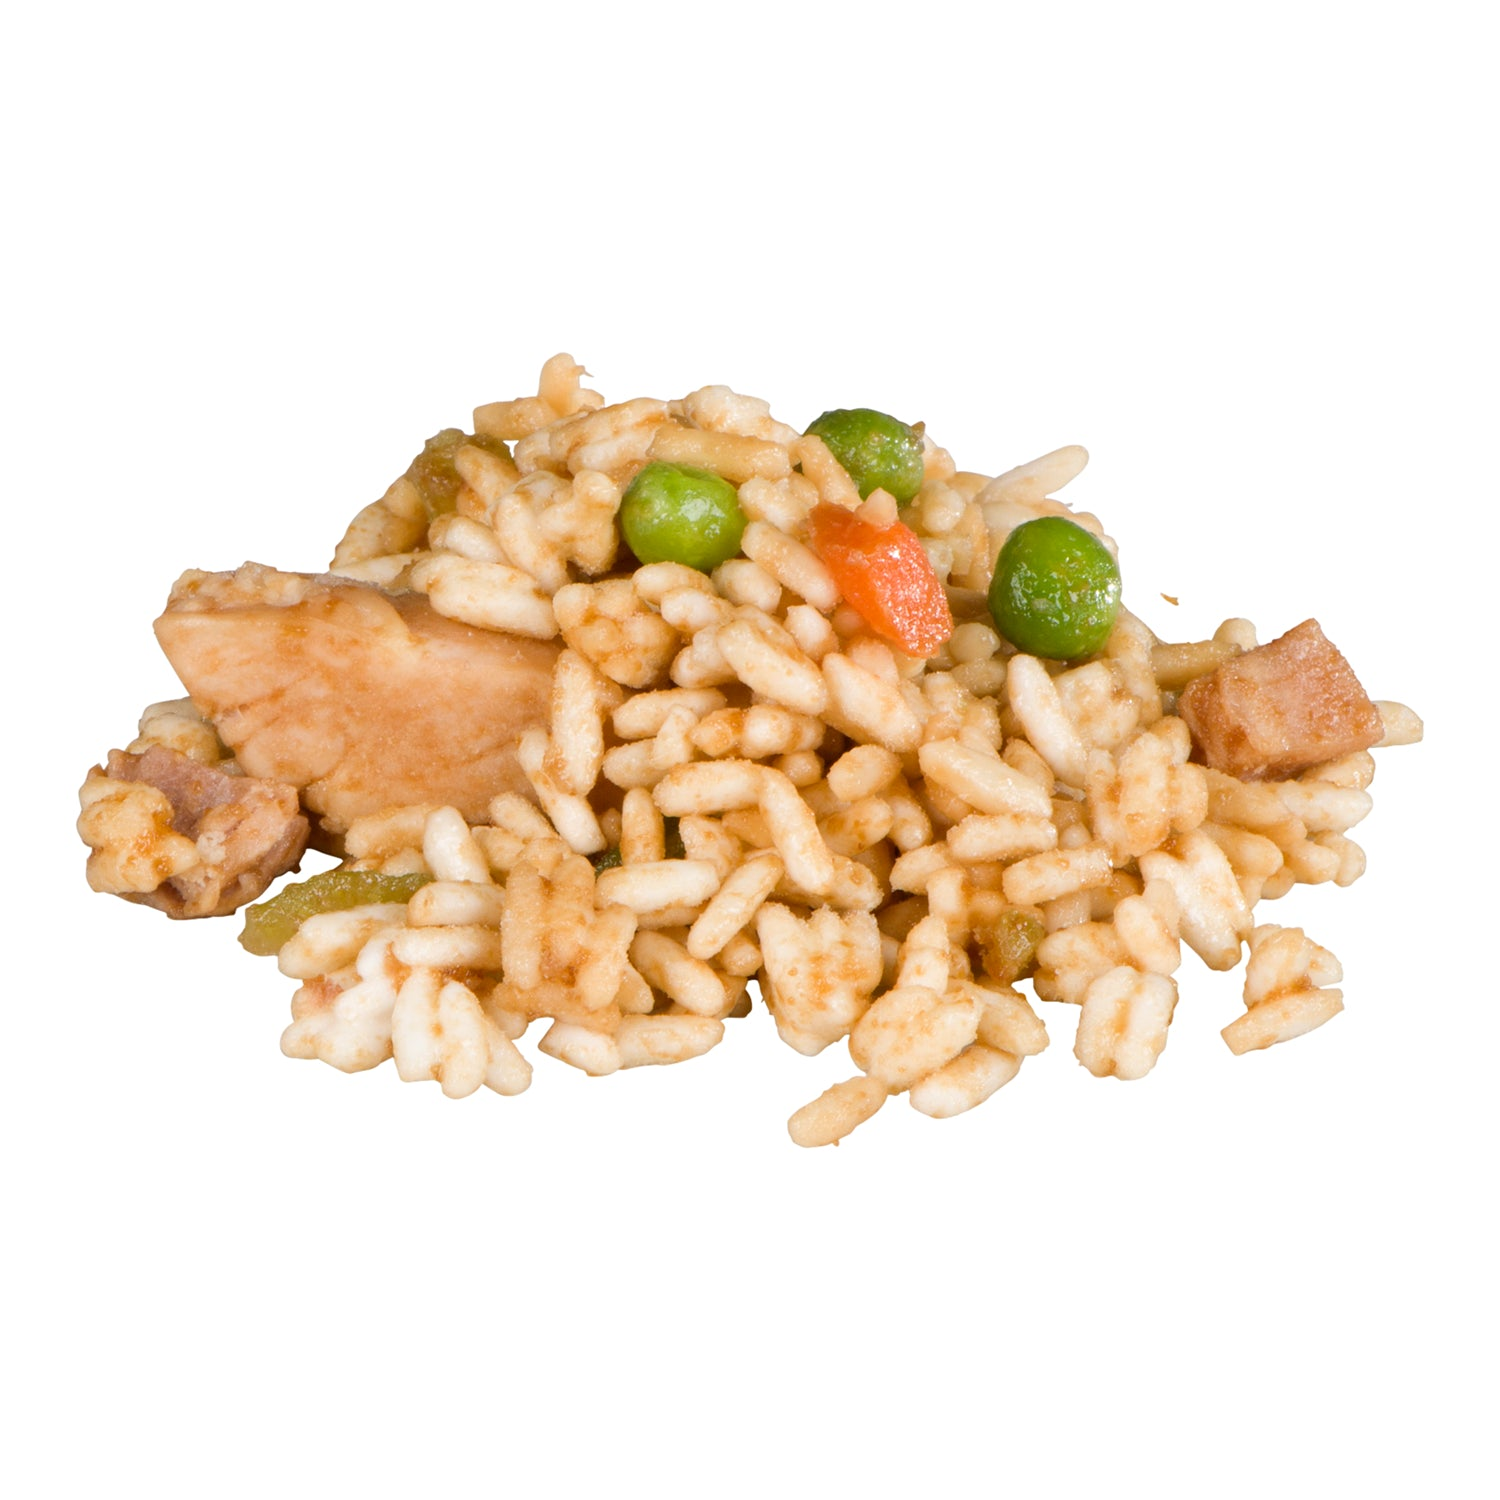 Wing Wong Frozen Chicken Fried Rice 1.36 kg Heat & Serve - 4 Pack [$8.27/kg]